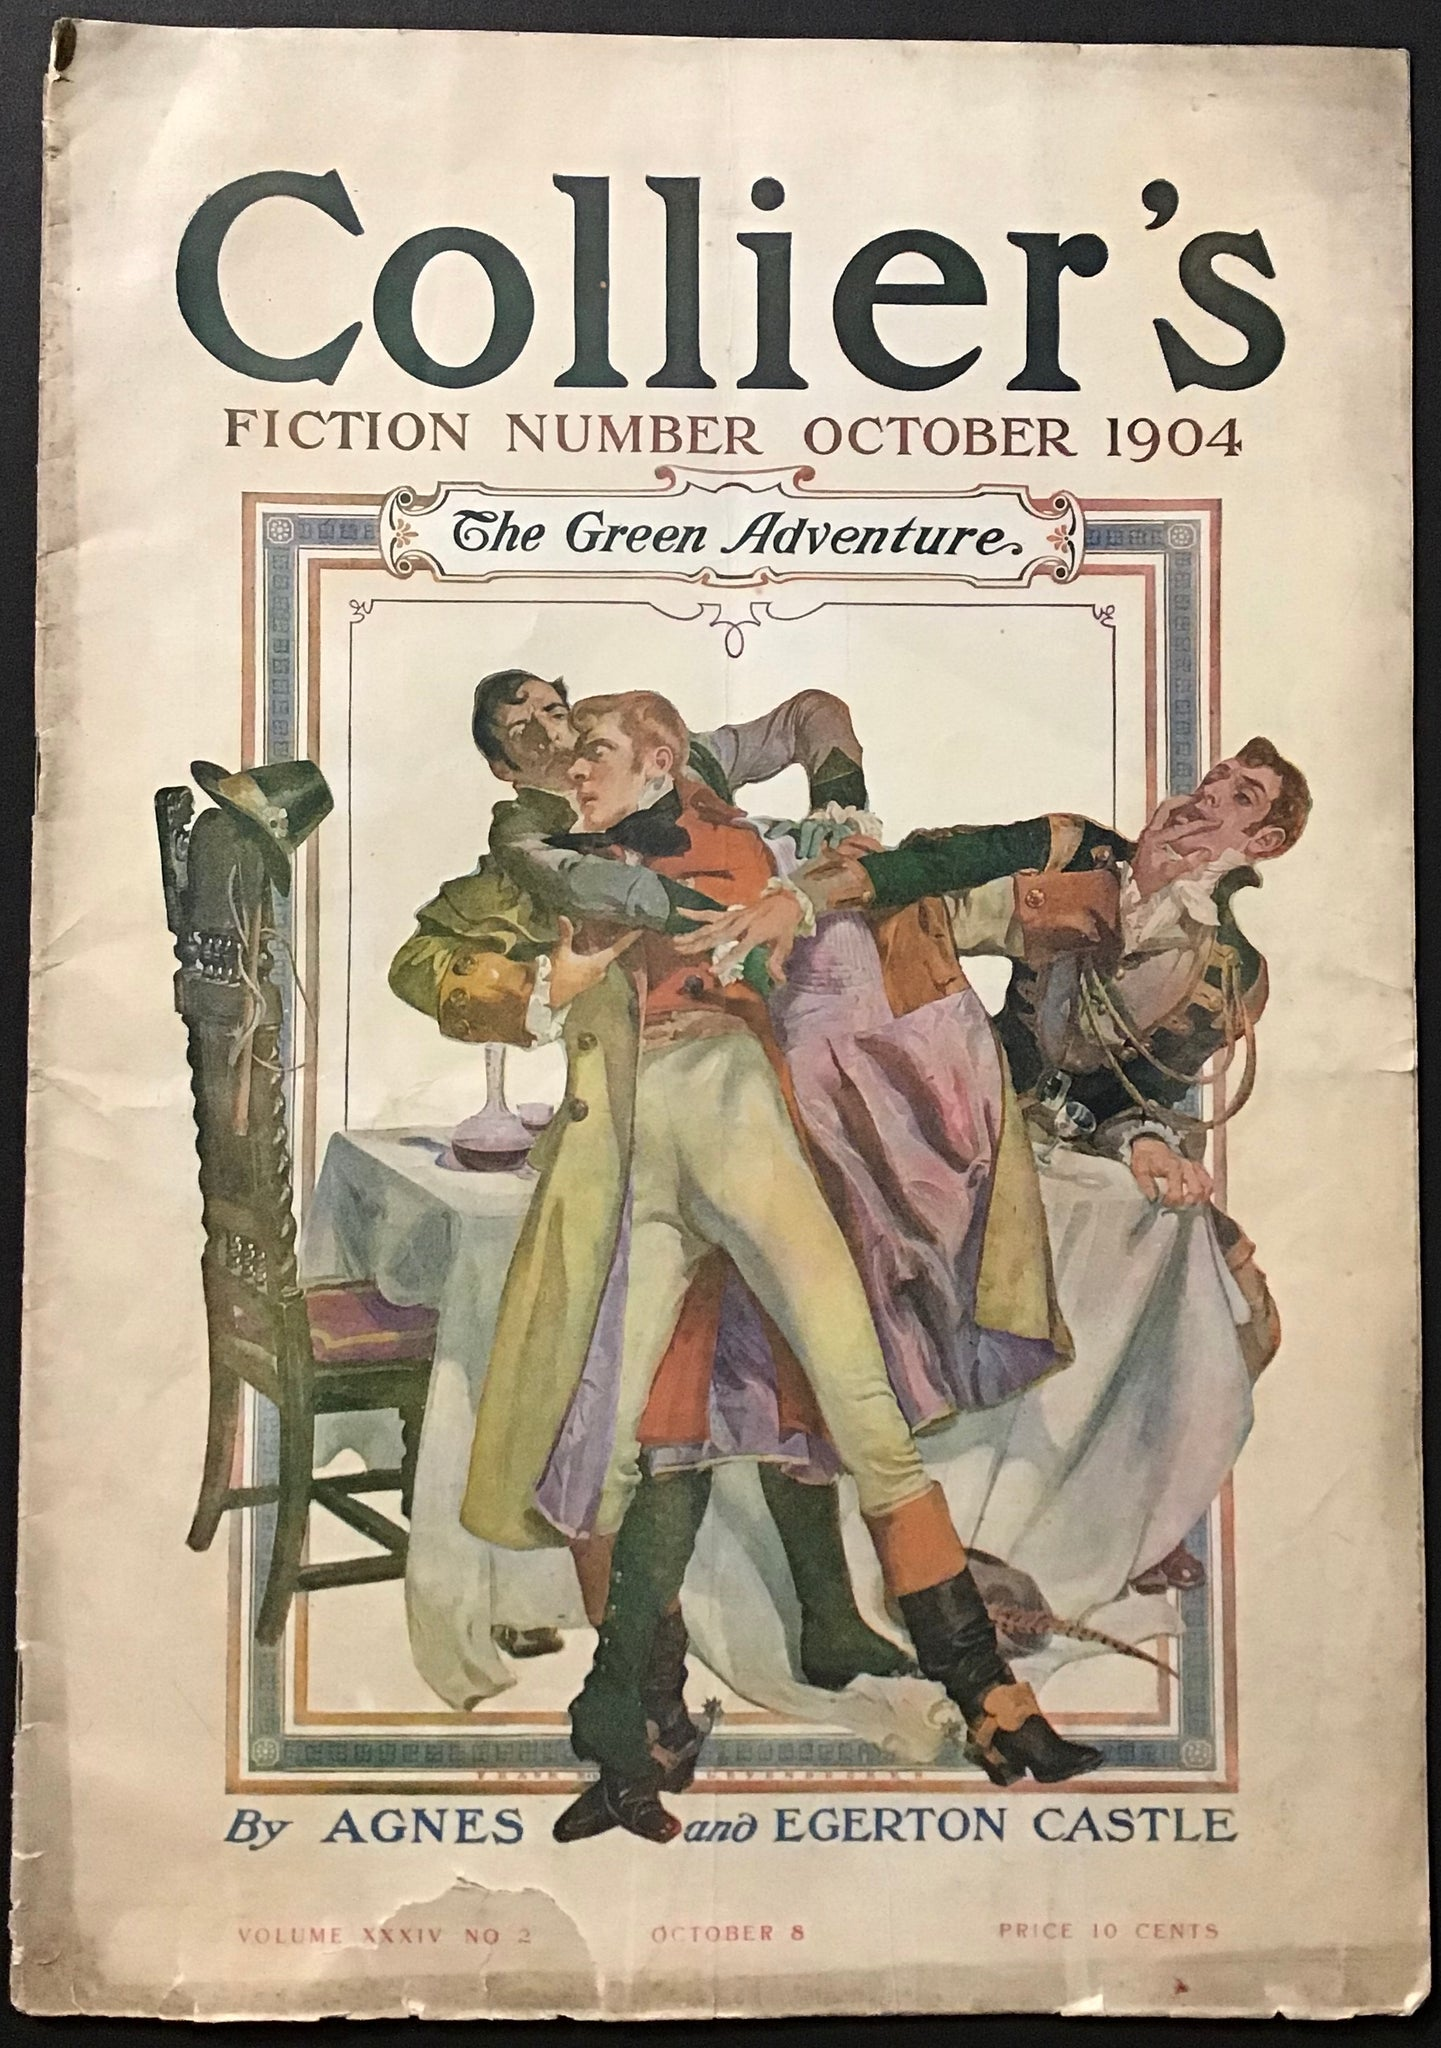 Collier's - Fiction Number October 1904